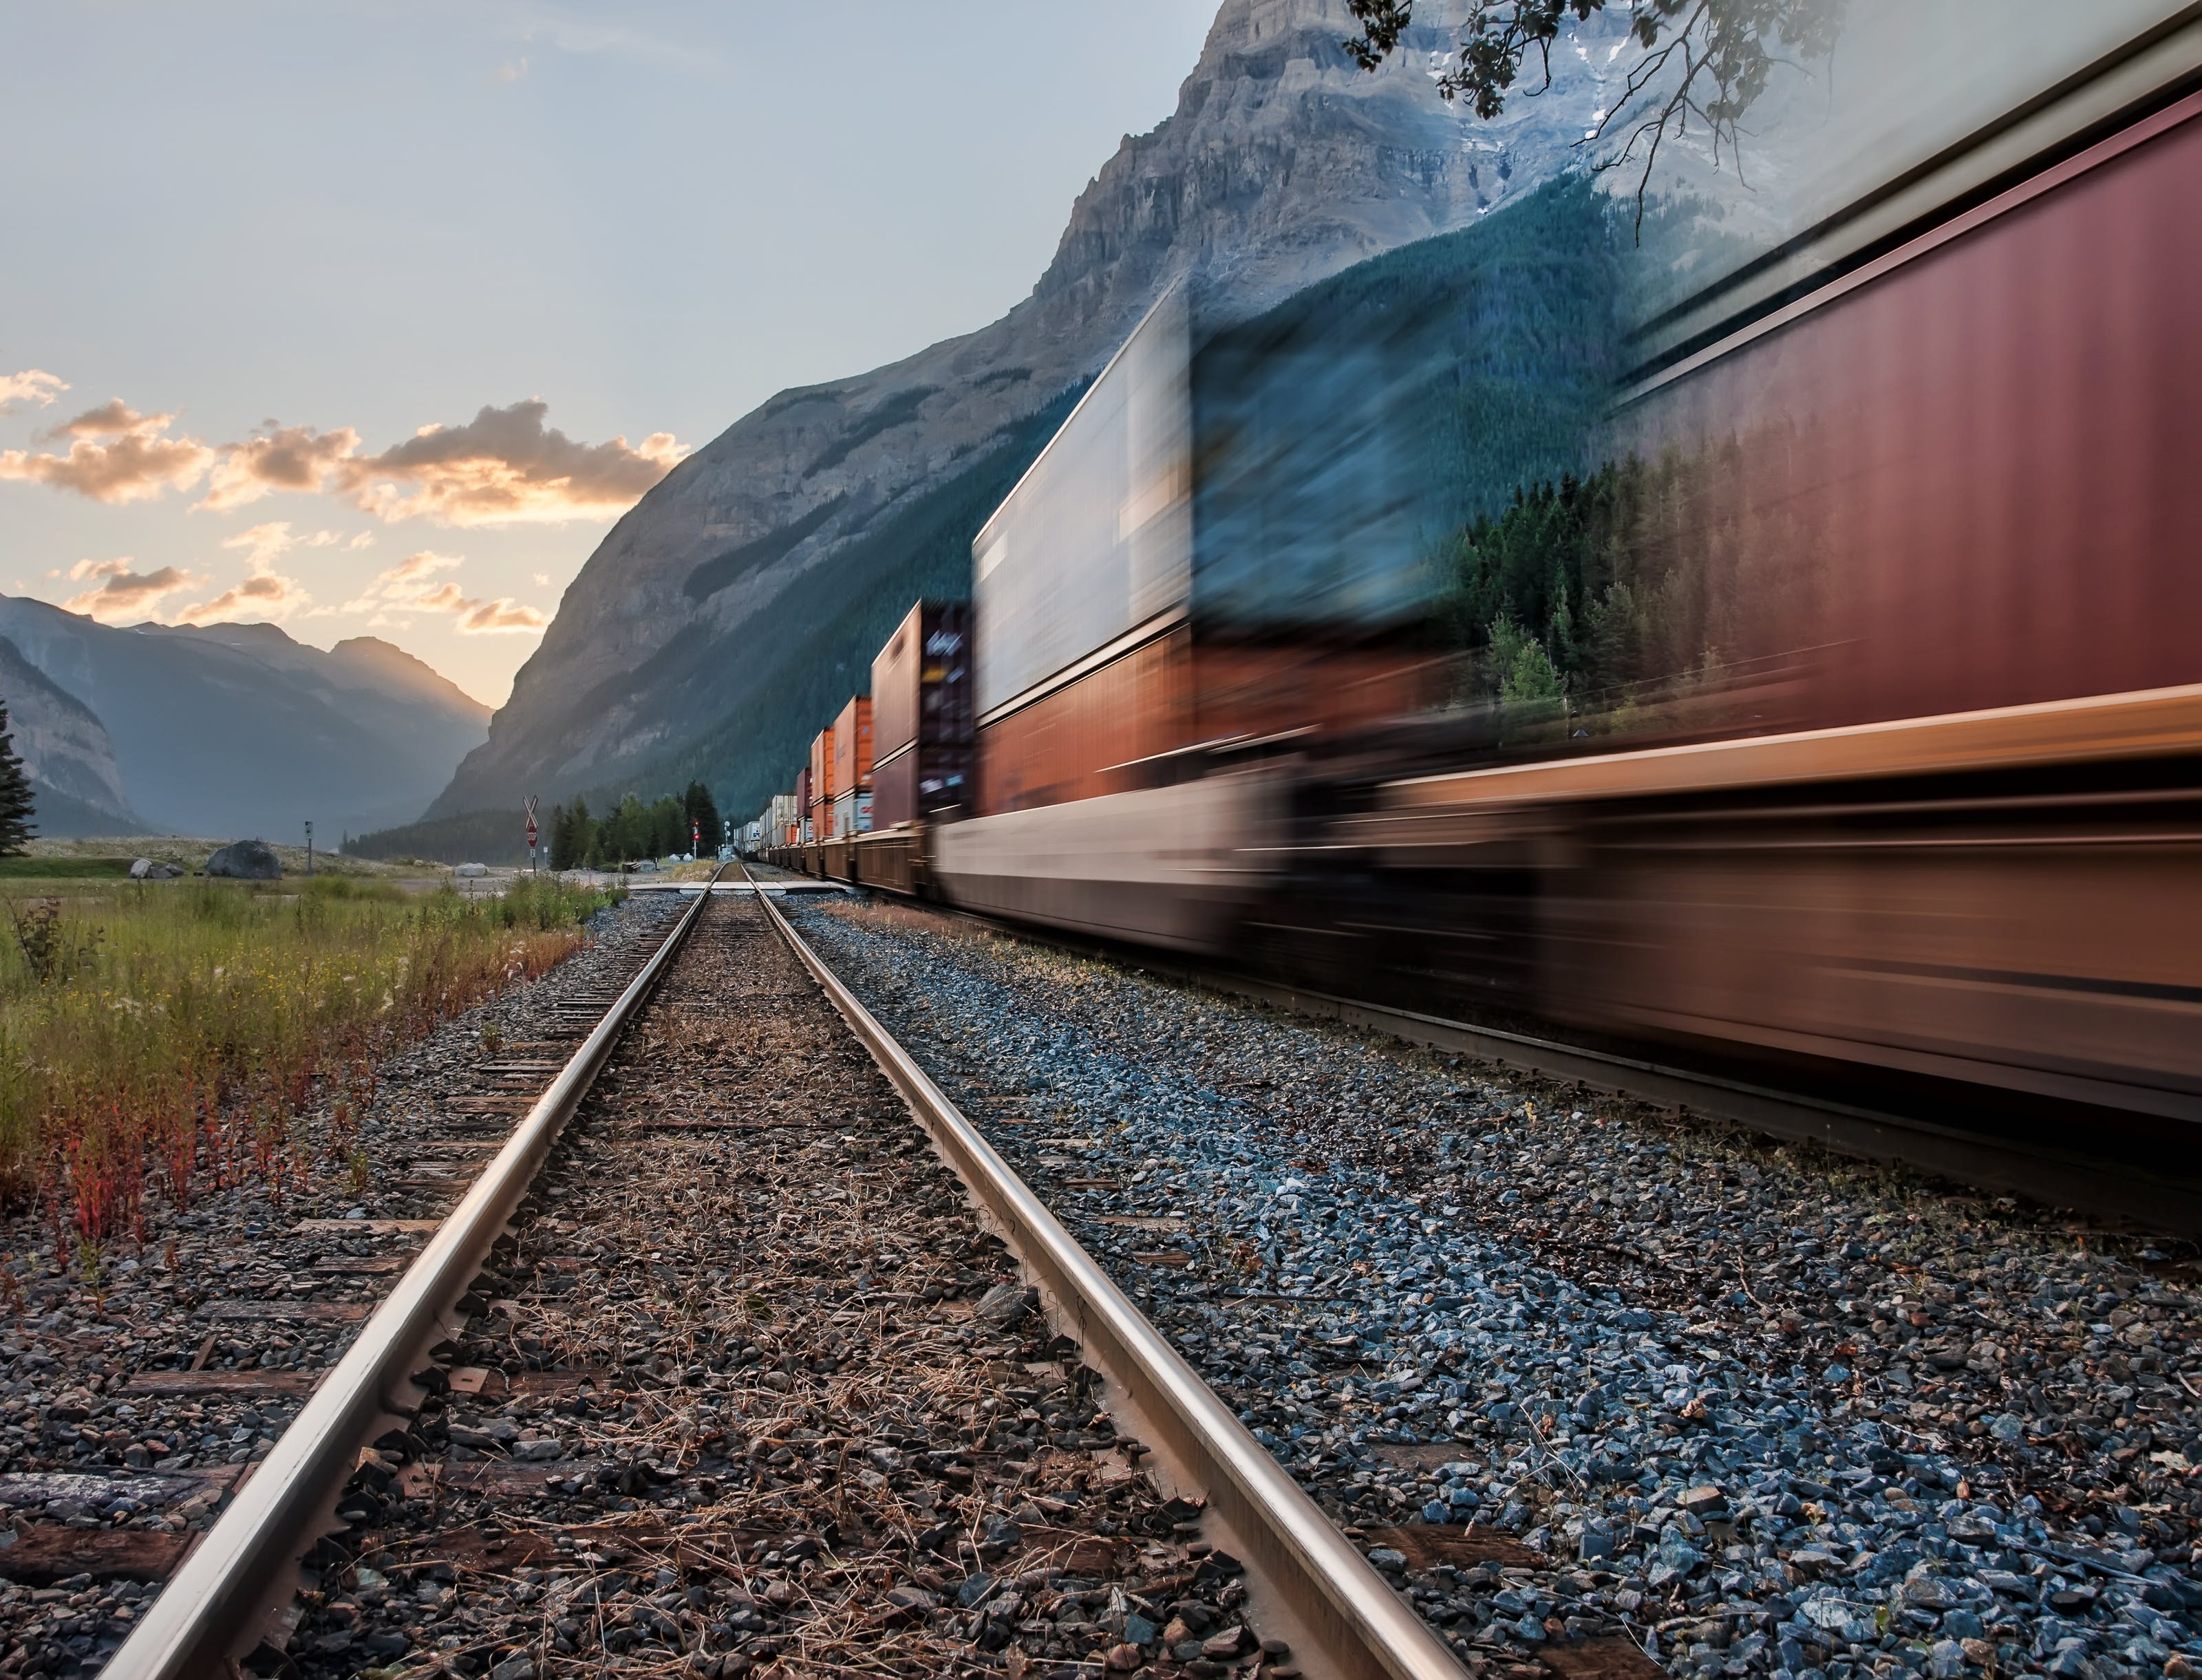 Passing Train on the Tracks